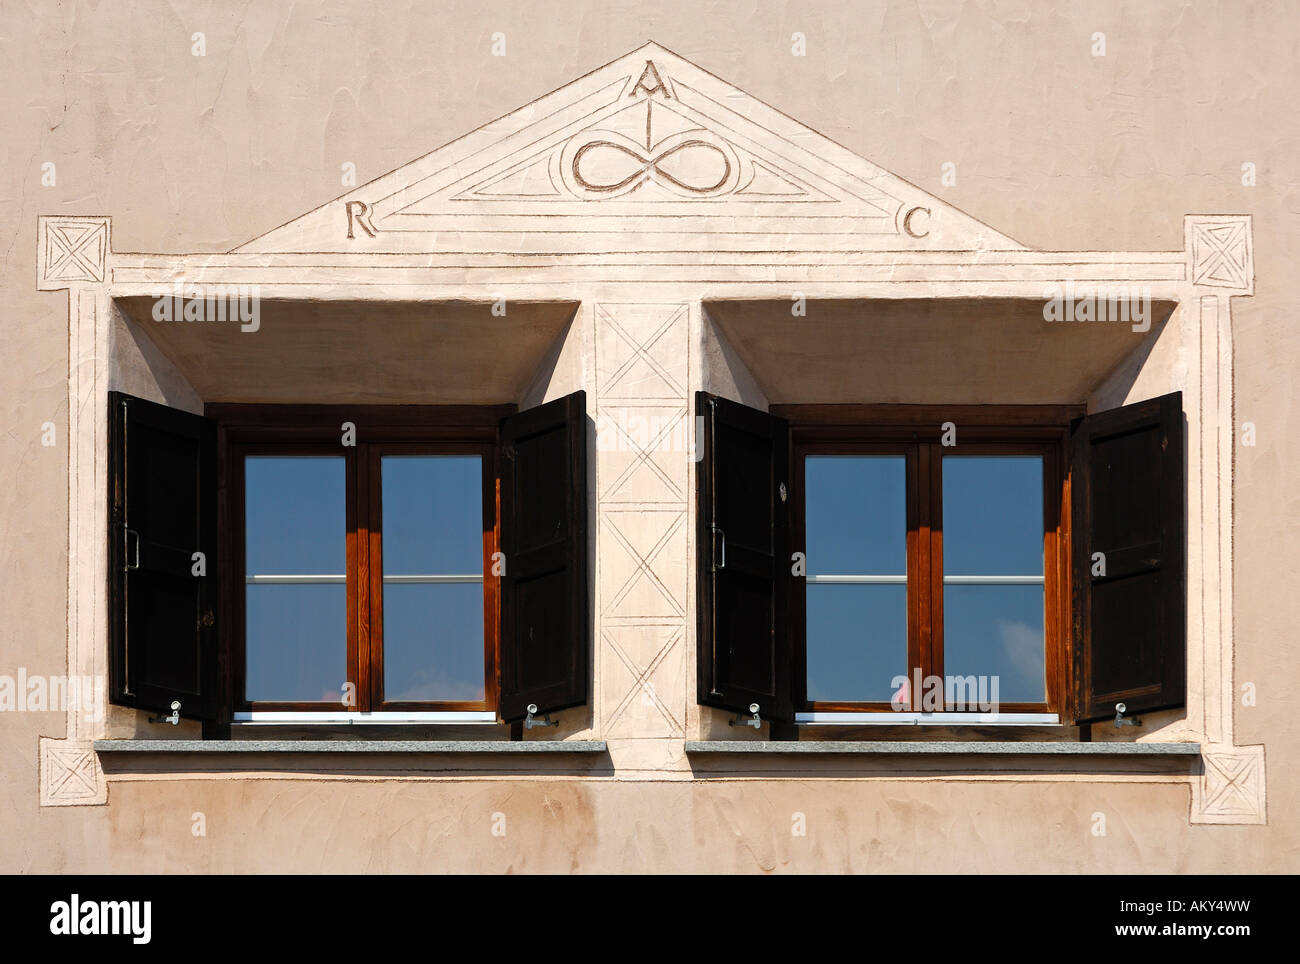 Window view of an Engadine house decorated with Sgraffito ornaments, Samedan, Engadin, Grisons, Switzerland Stock Photo